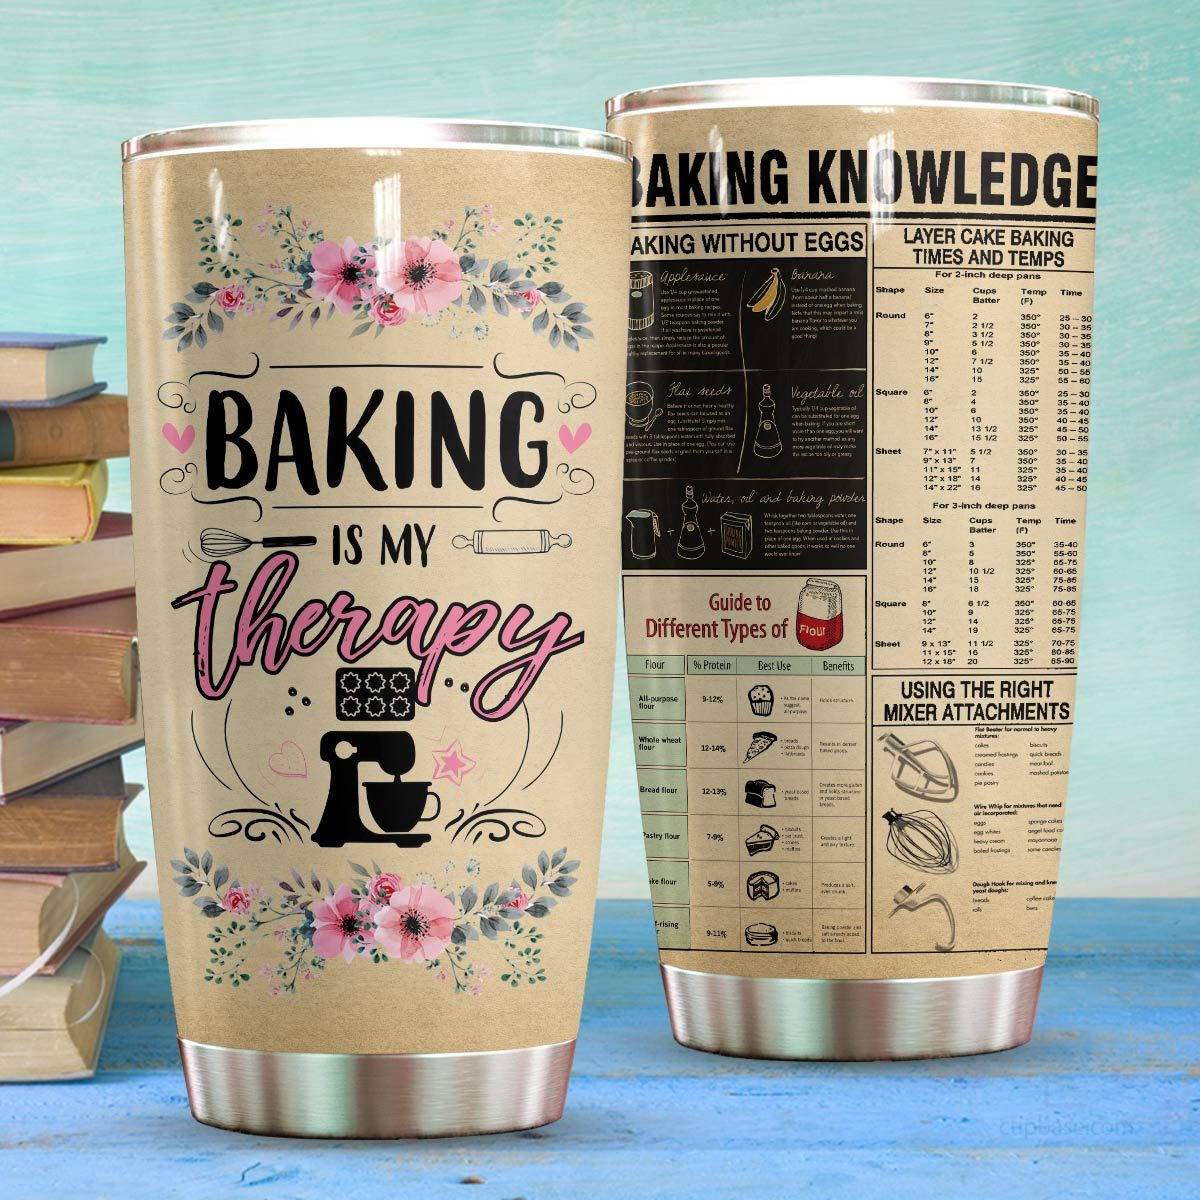 Baking is my therapy baking knowledge full over print tumbler 4